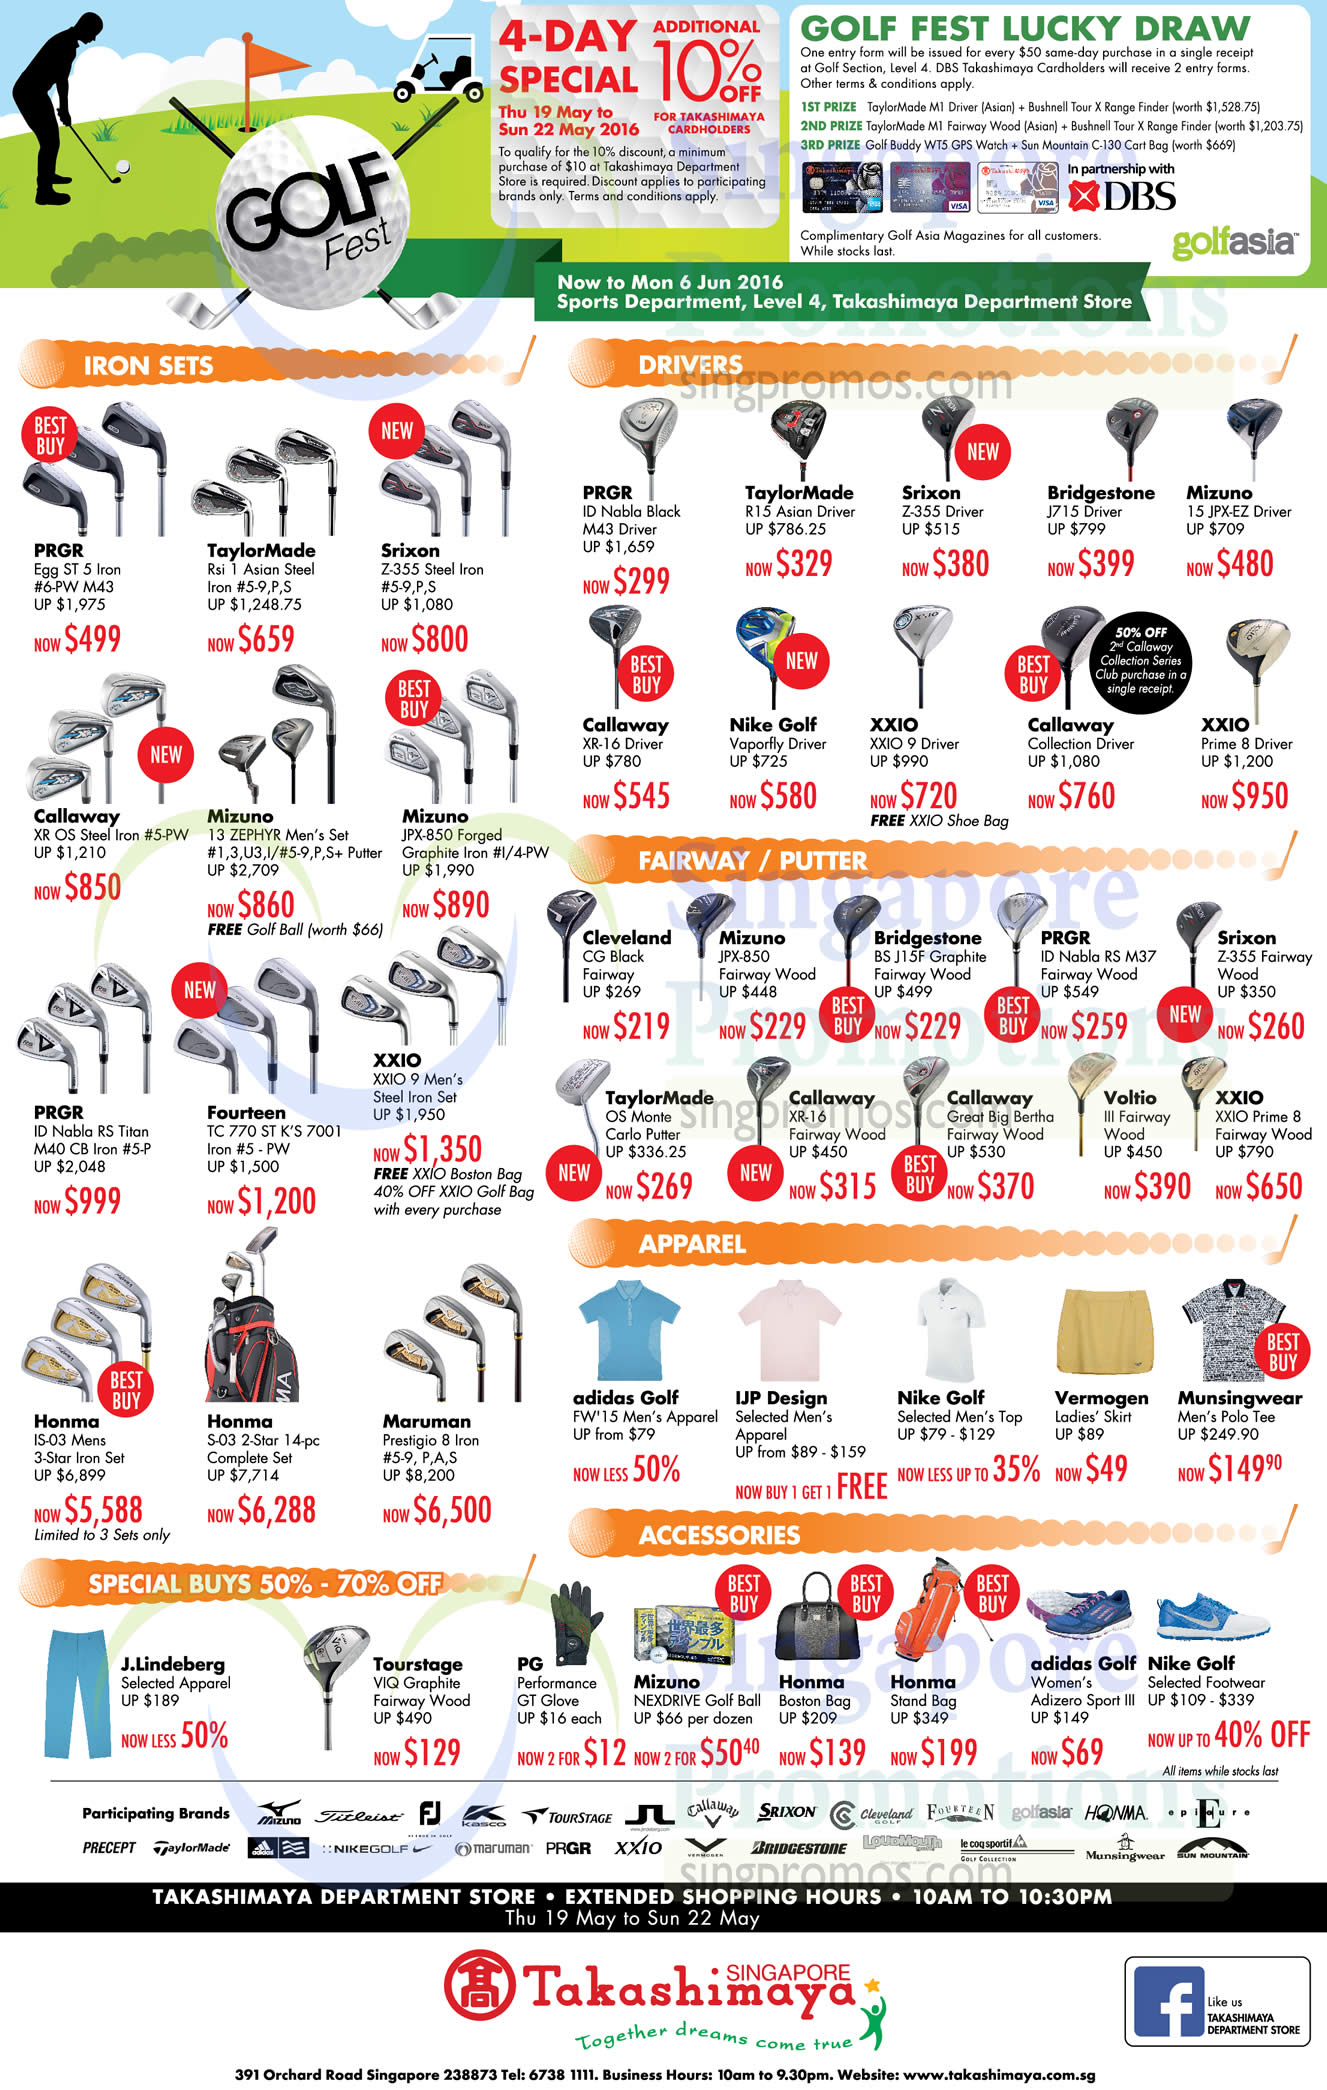 19 May Special Buys, Iron Sets, Drivers, Fairway, Putter, Accessories